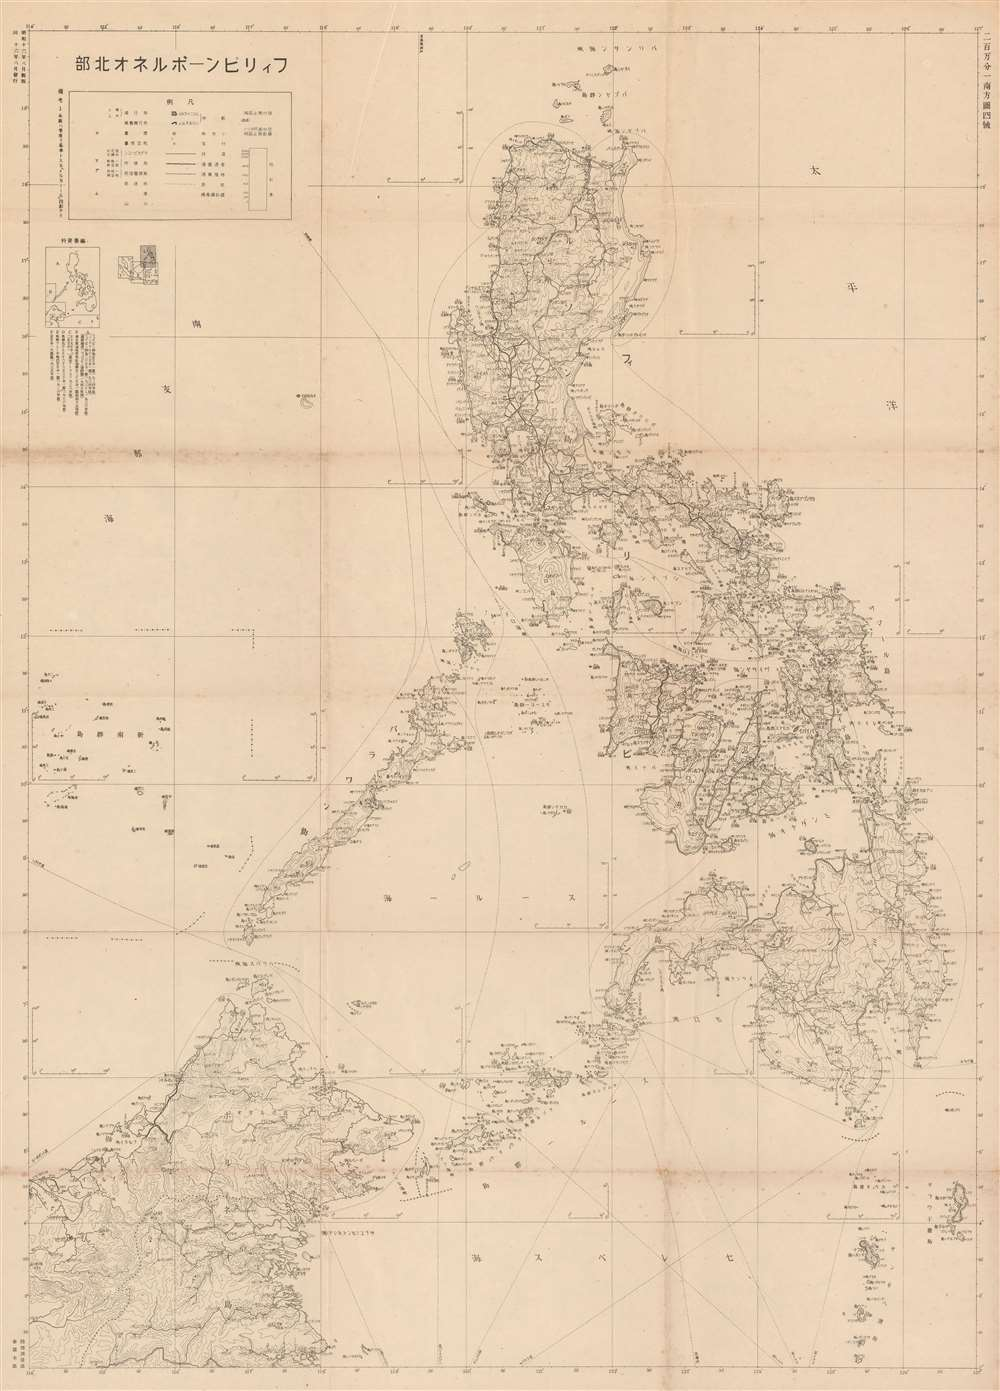 1941 Imperial Japanese Survey WWII Map of the Philippines (before invasion)